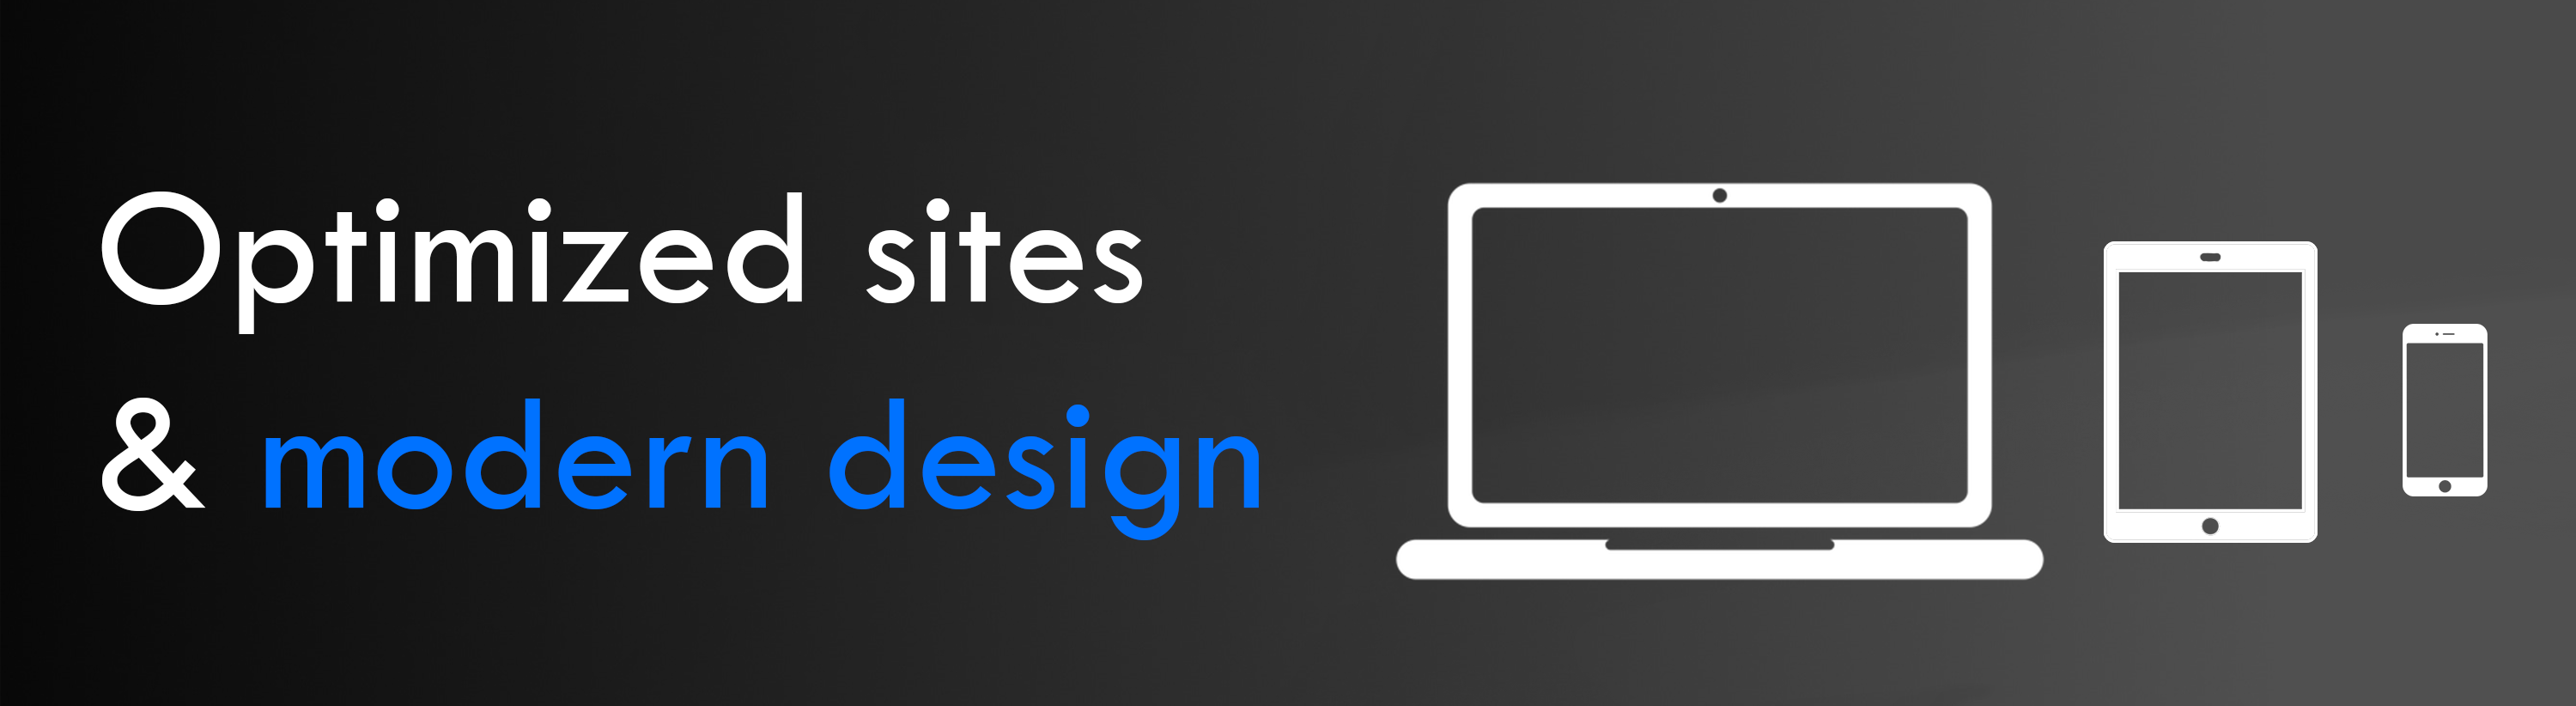 optimized websites and modern designs